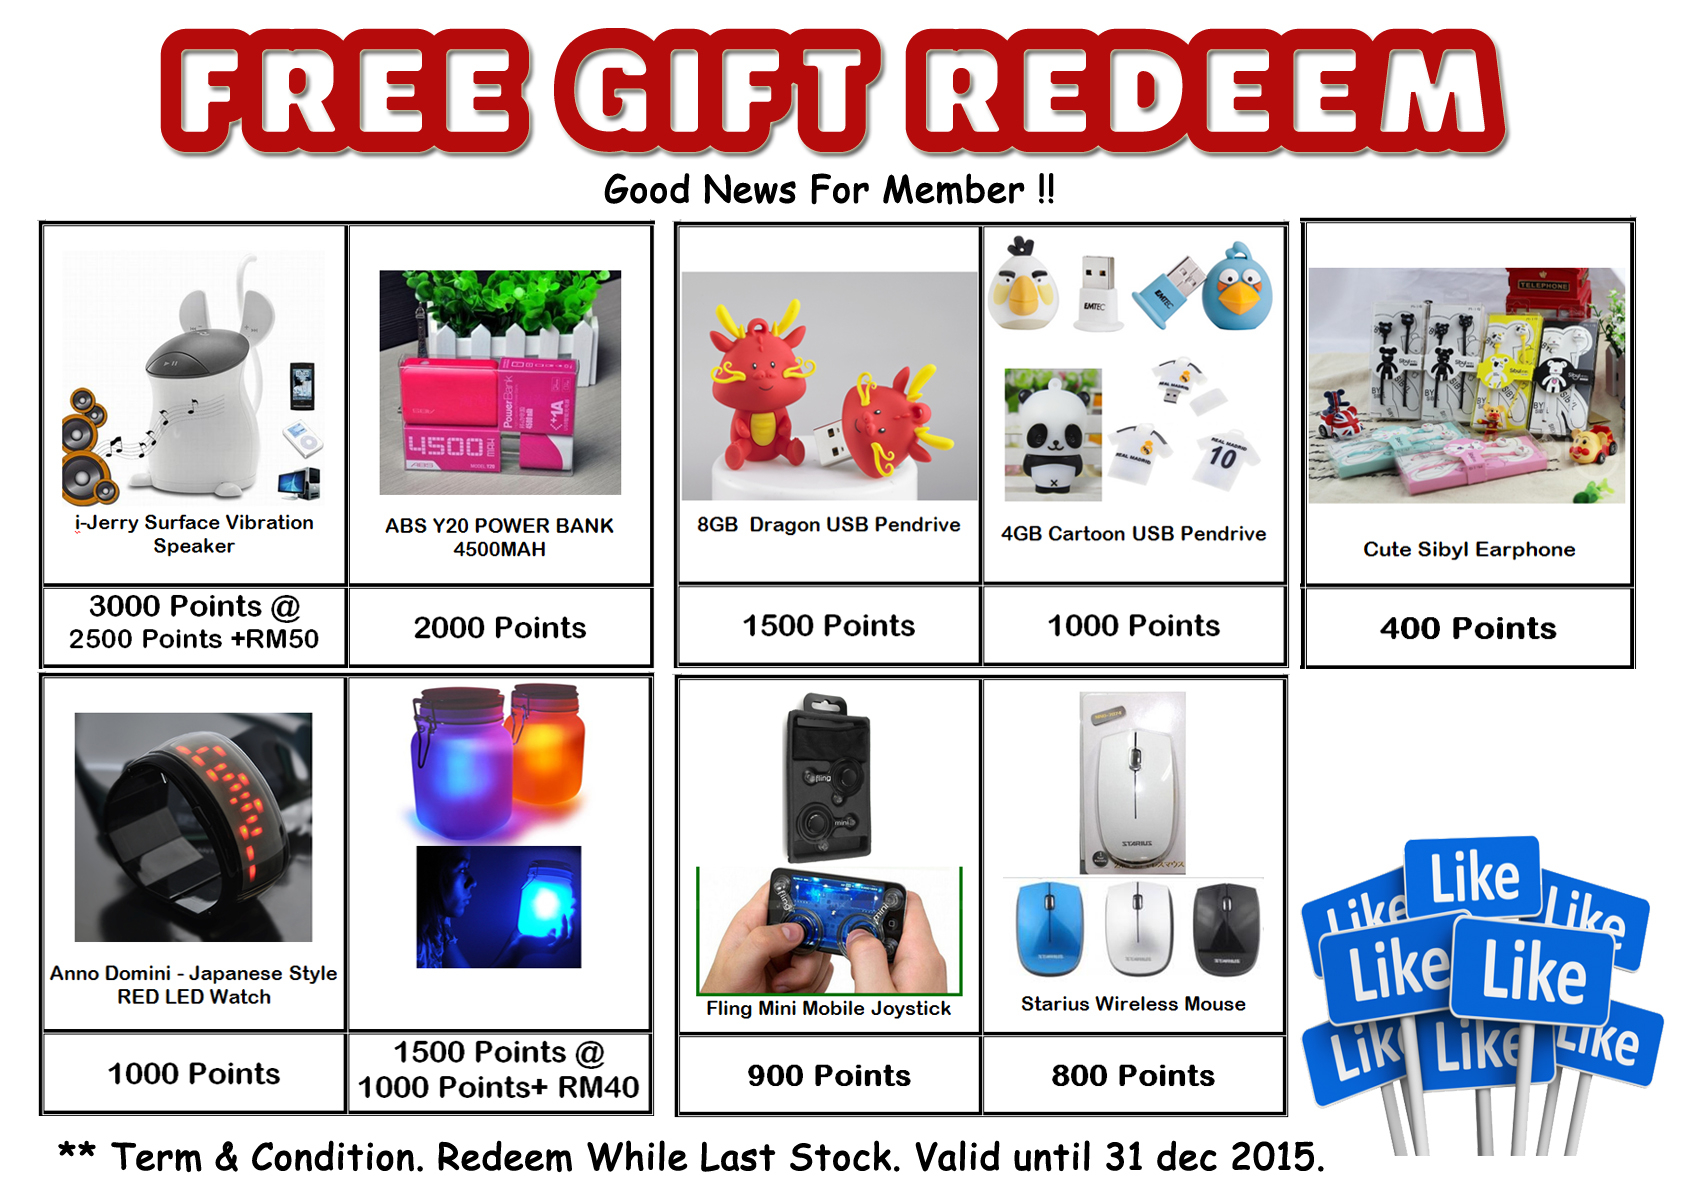 FREE GIFT REEDEM(website)